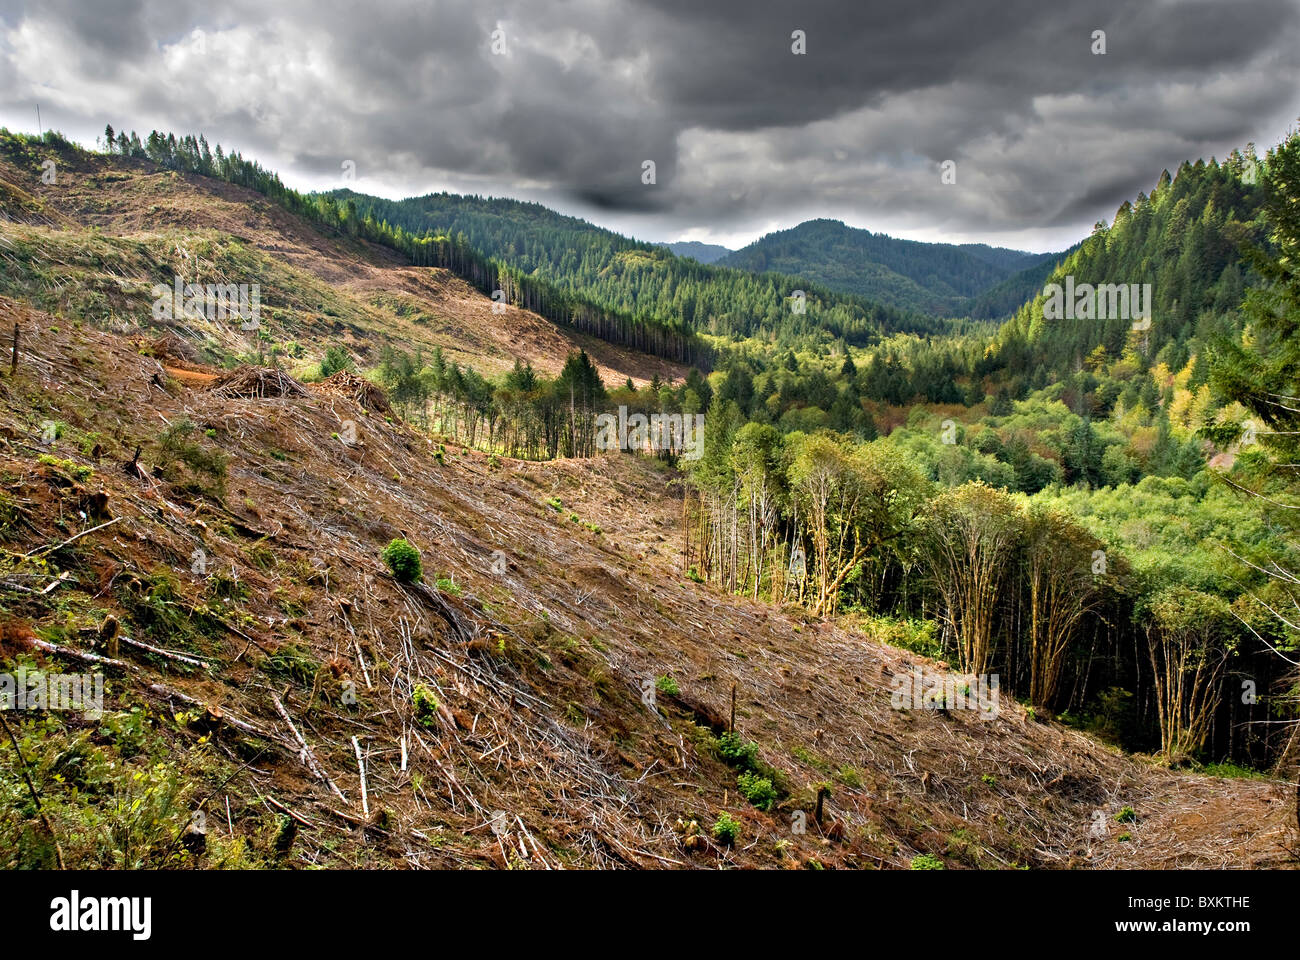 Clear cut logging operations in stormy Oregon mountain valley Stock Photo